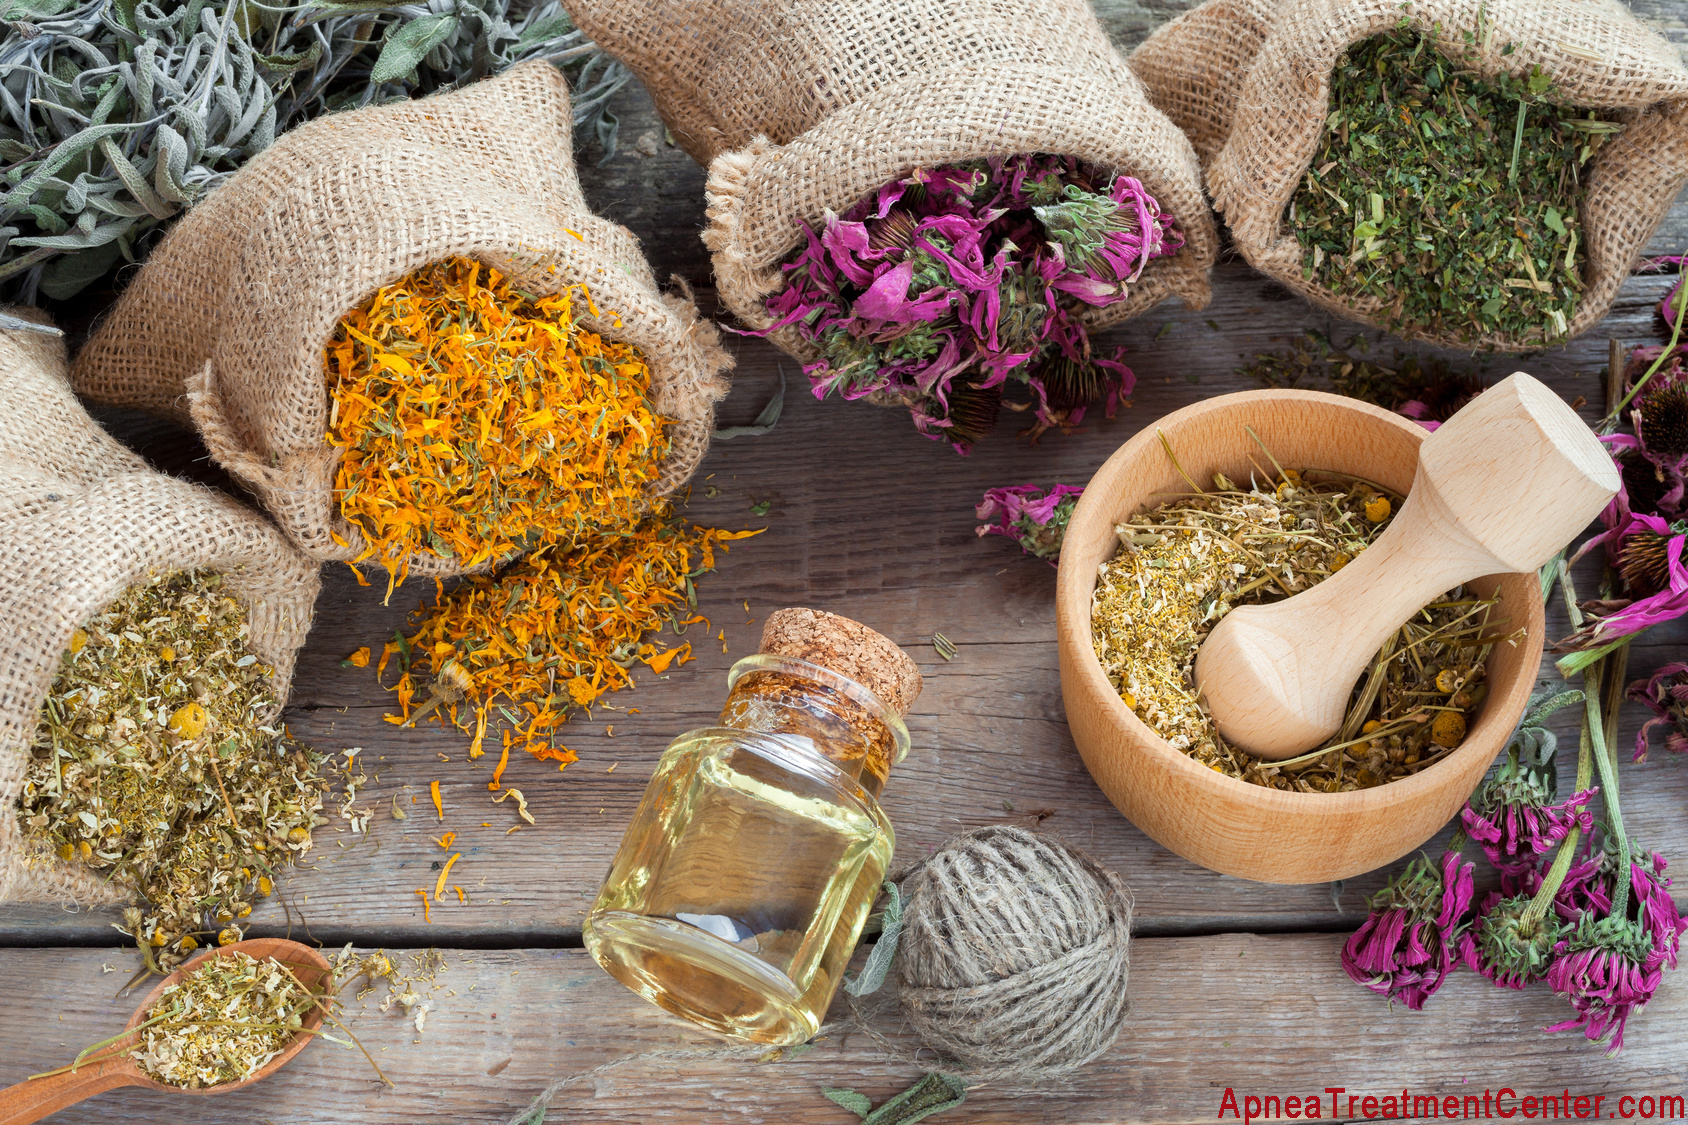 Herbal Treatments for Sleep Apnea: Pros and Cons